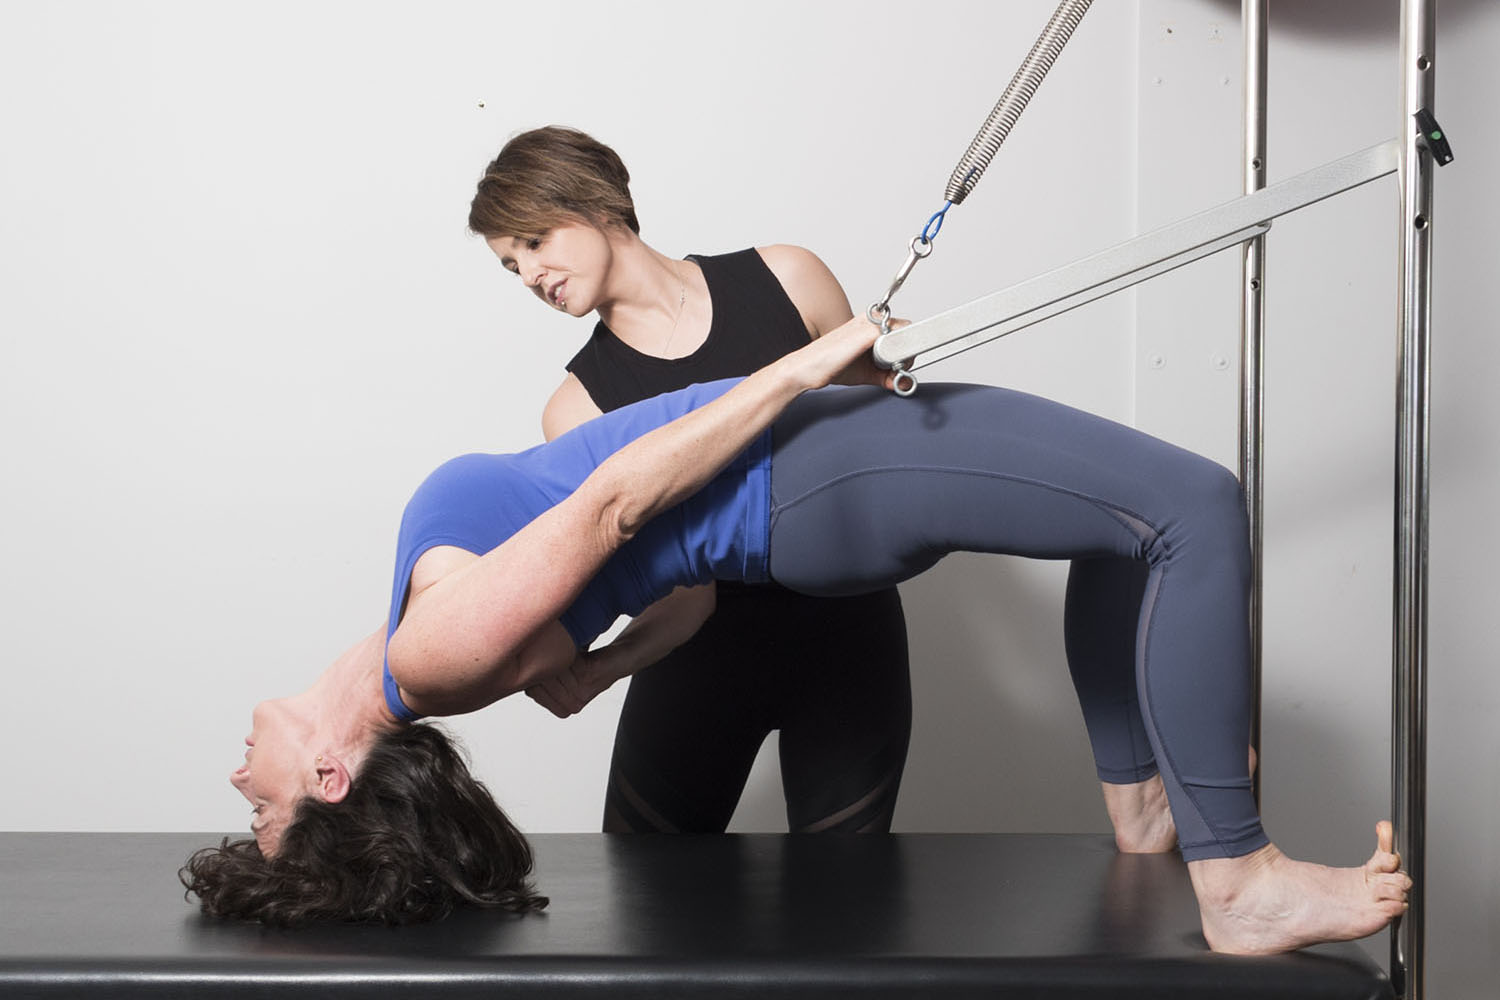 Private Classes - Private Pilates classes offer the best opportunity for an instructor to guide you through programming, using 'hands on' techniques to help you to achieve your physical goals.If you have an acute injury that requires 100% monitoring or feel you need individual and undivided attention, then Private classes are for you.